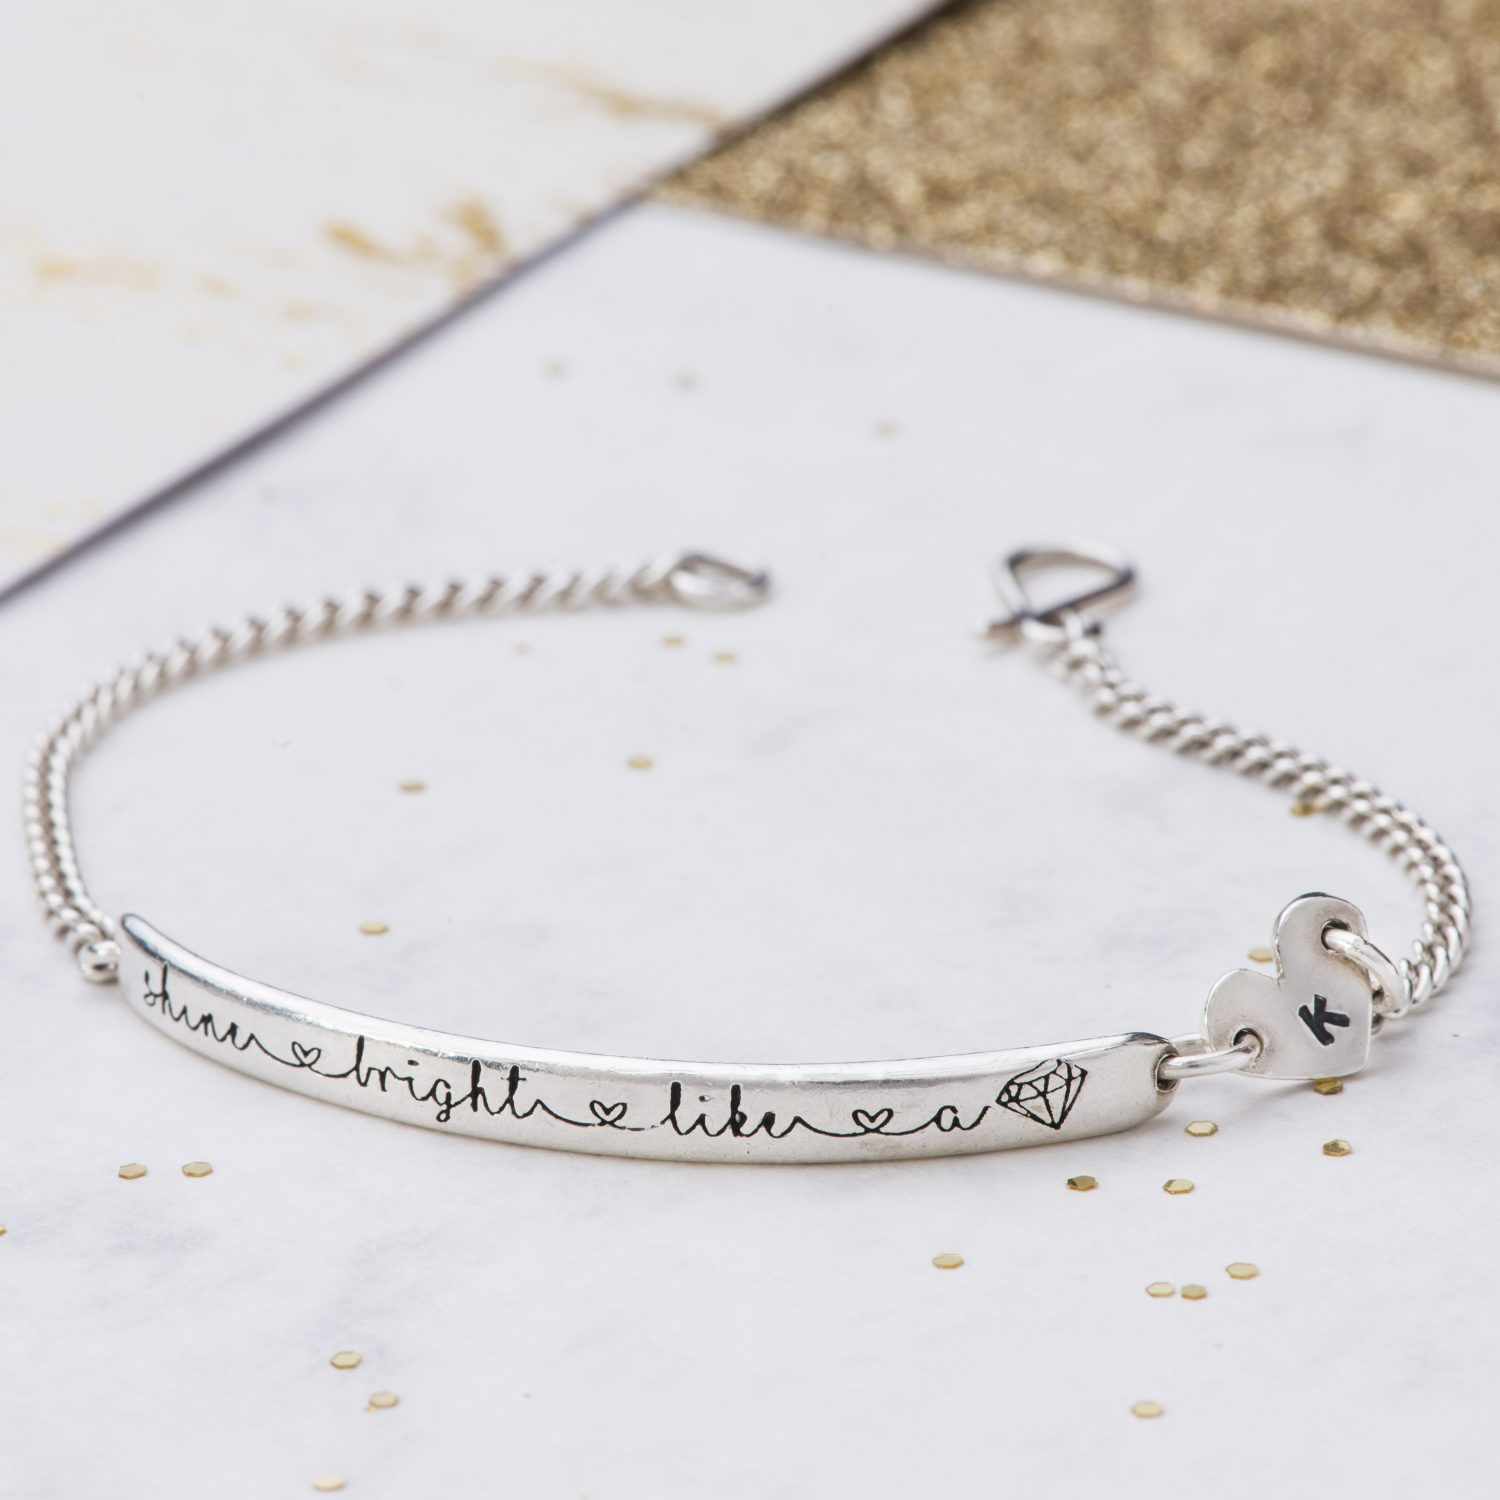 inspirational quick view bracelet silver hope message p corinthians love faith